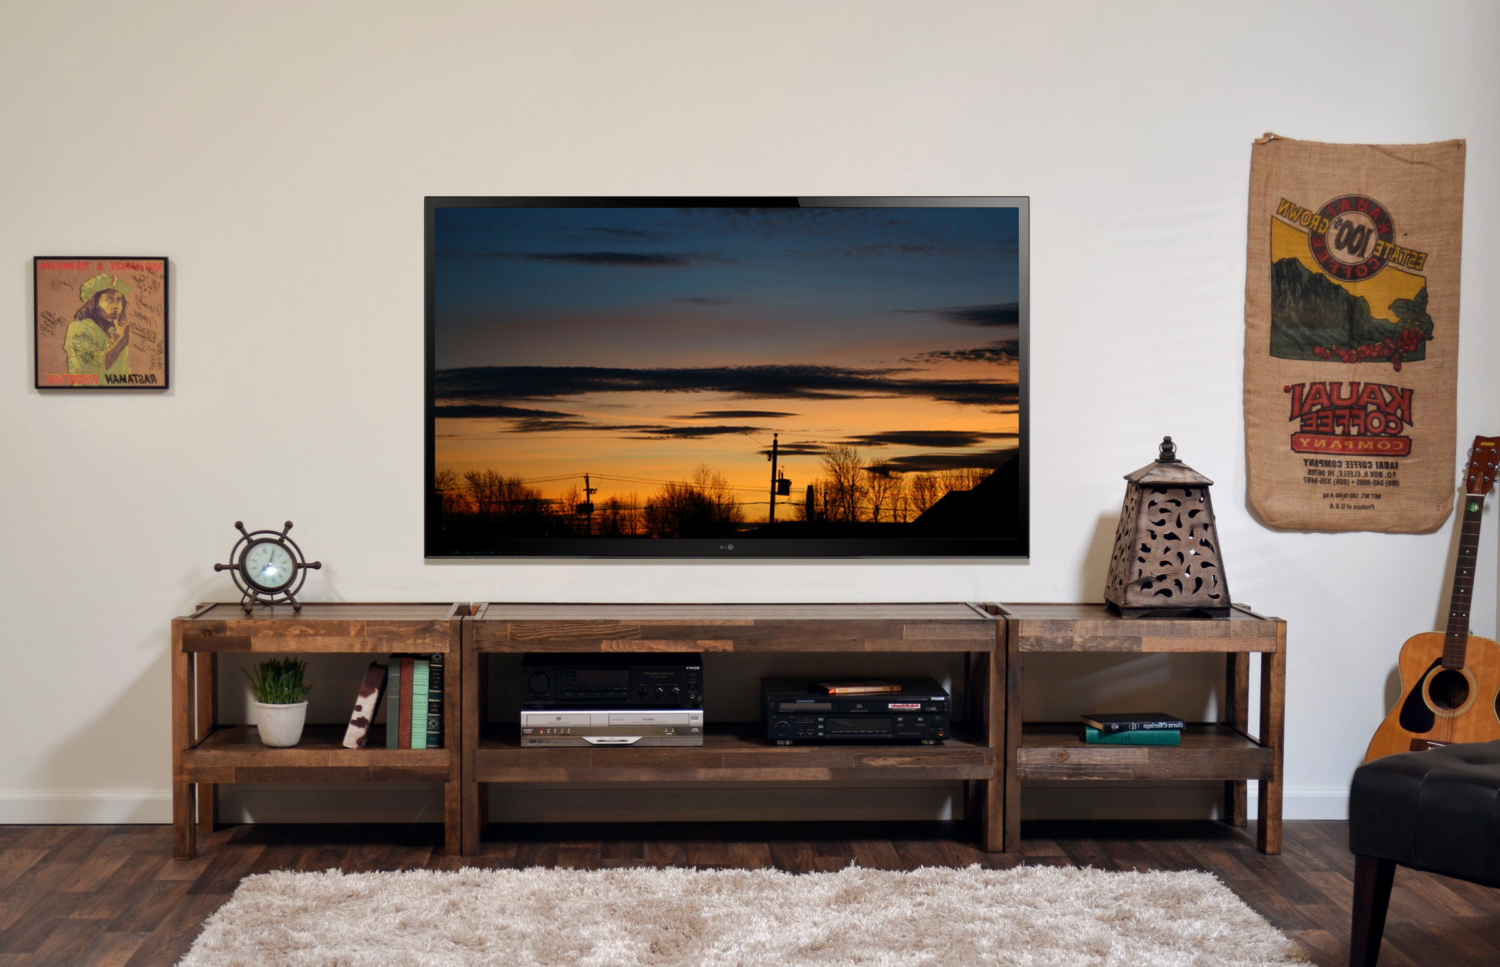 Most Recently Released Fireplace Tv Stand Reclaimed Wood Stands How To Build A For Flat Regarding Recycled Wood Tv Stands (View 5 of 20)